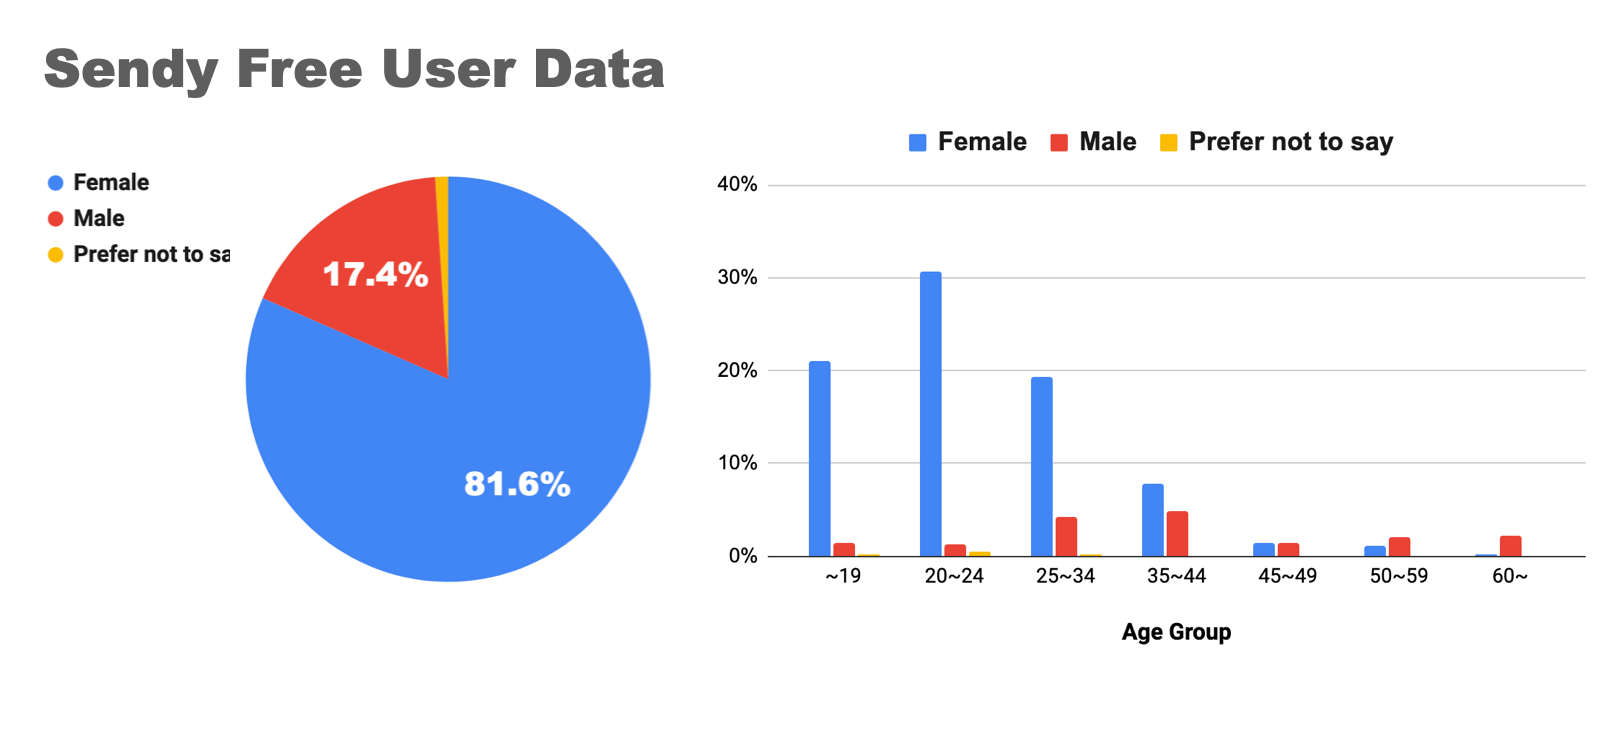 Sendy has more than 80% female users, especially young women